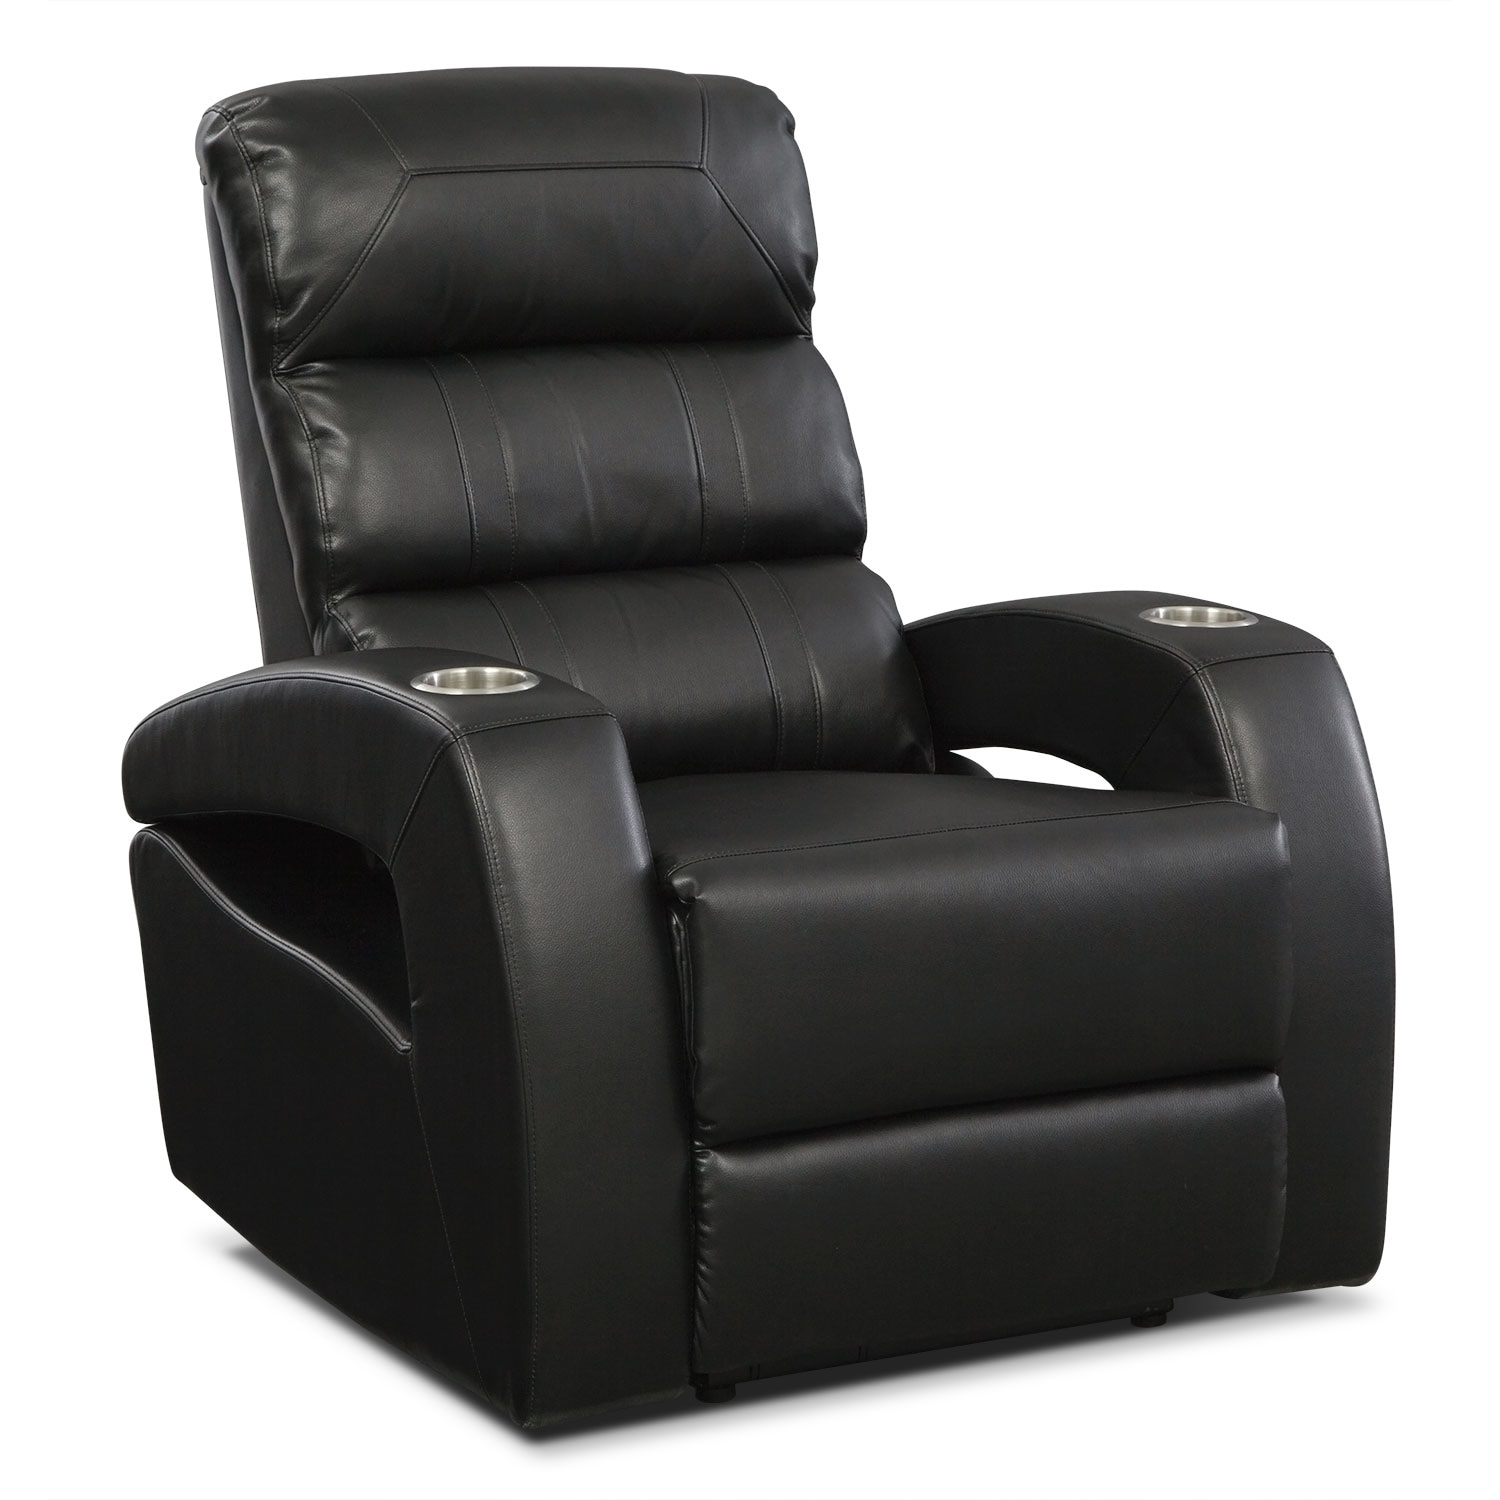 Gemini Power Recliner